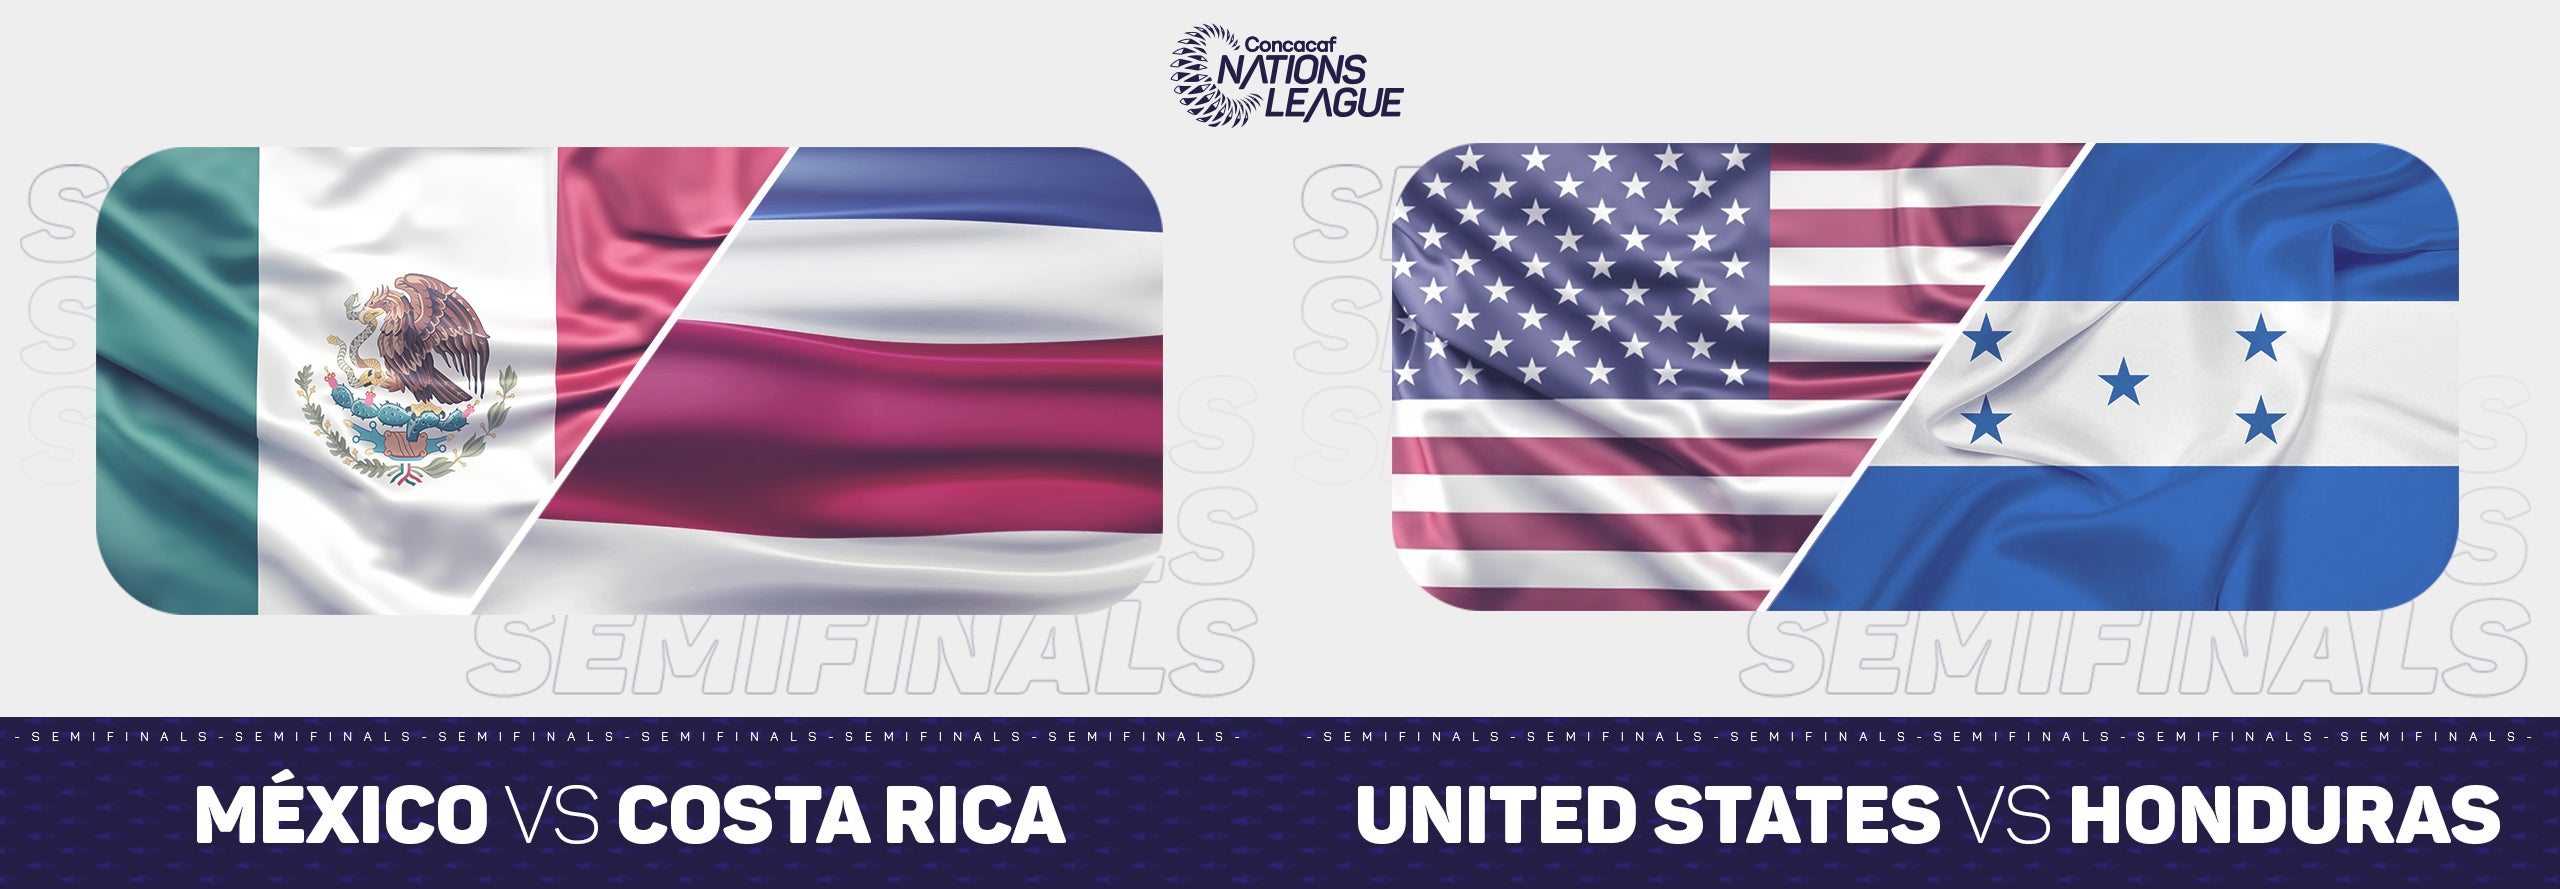 Concacaf Nations League Semifinals